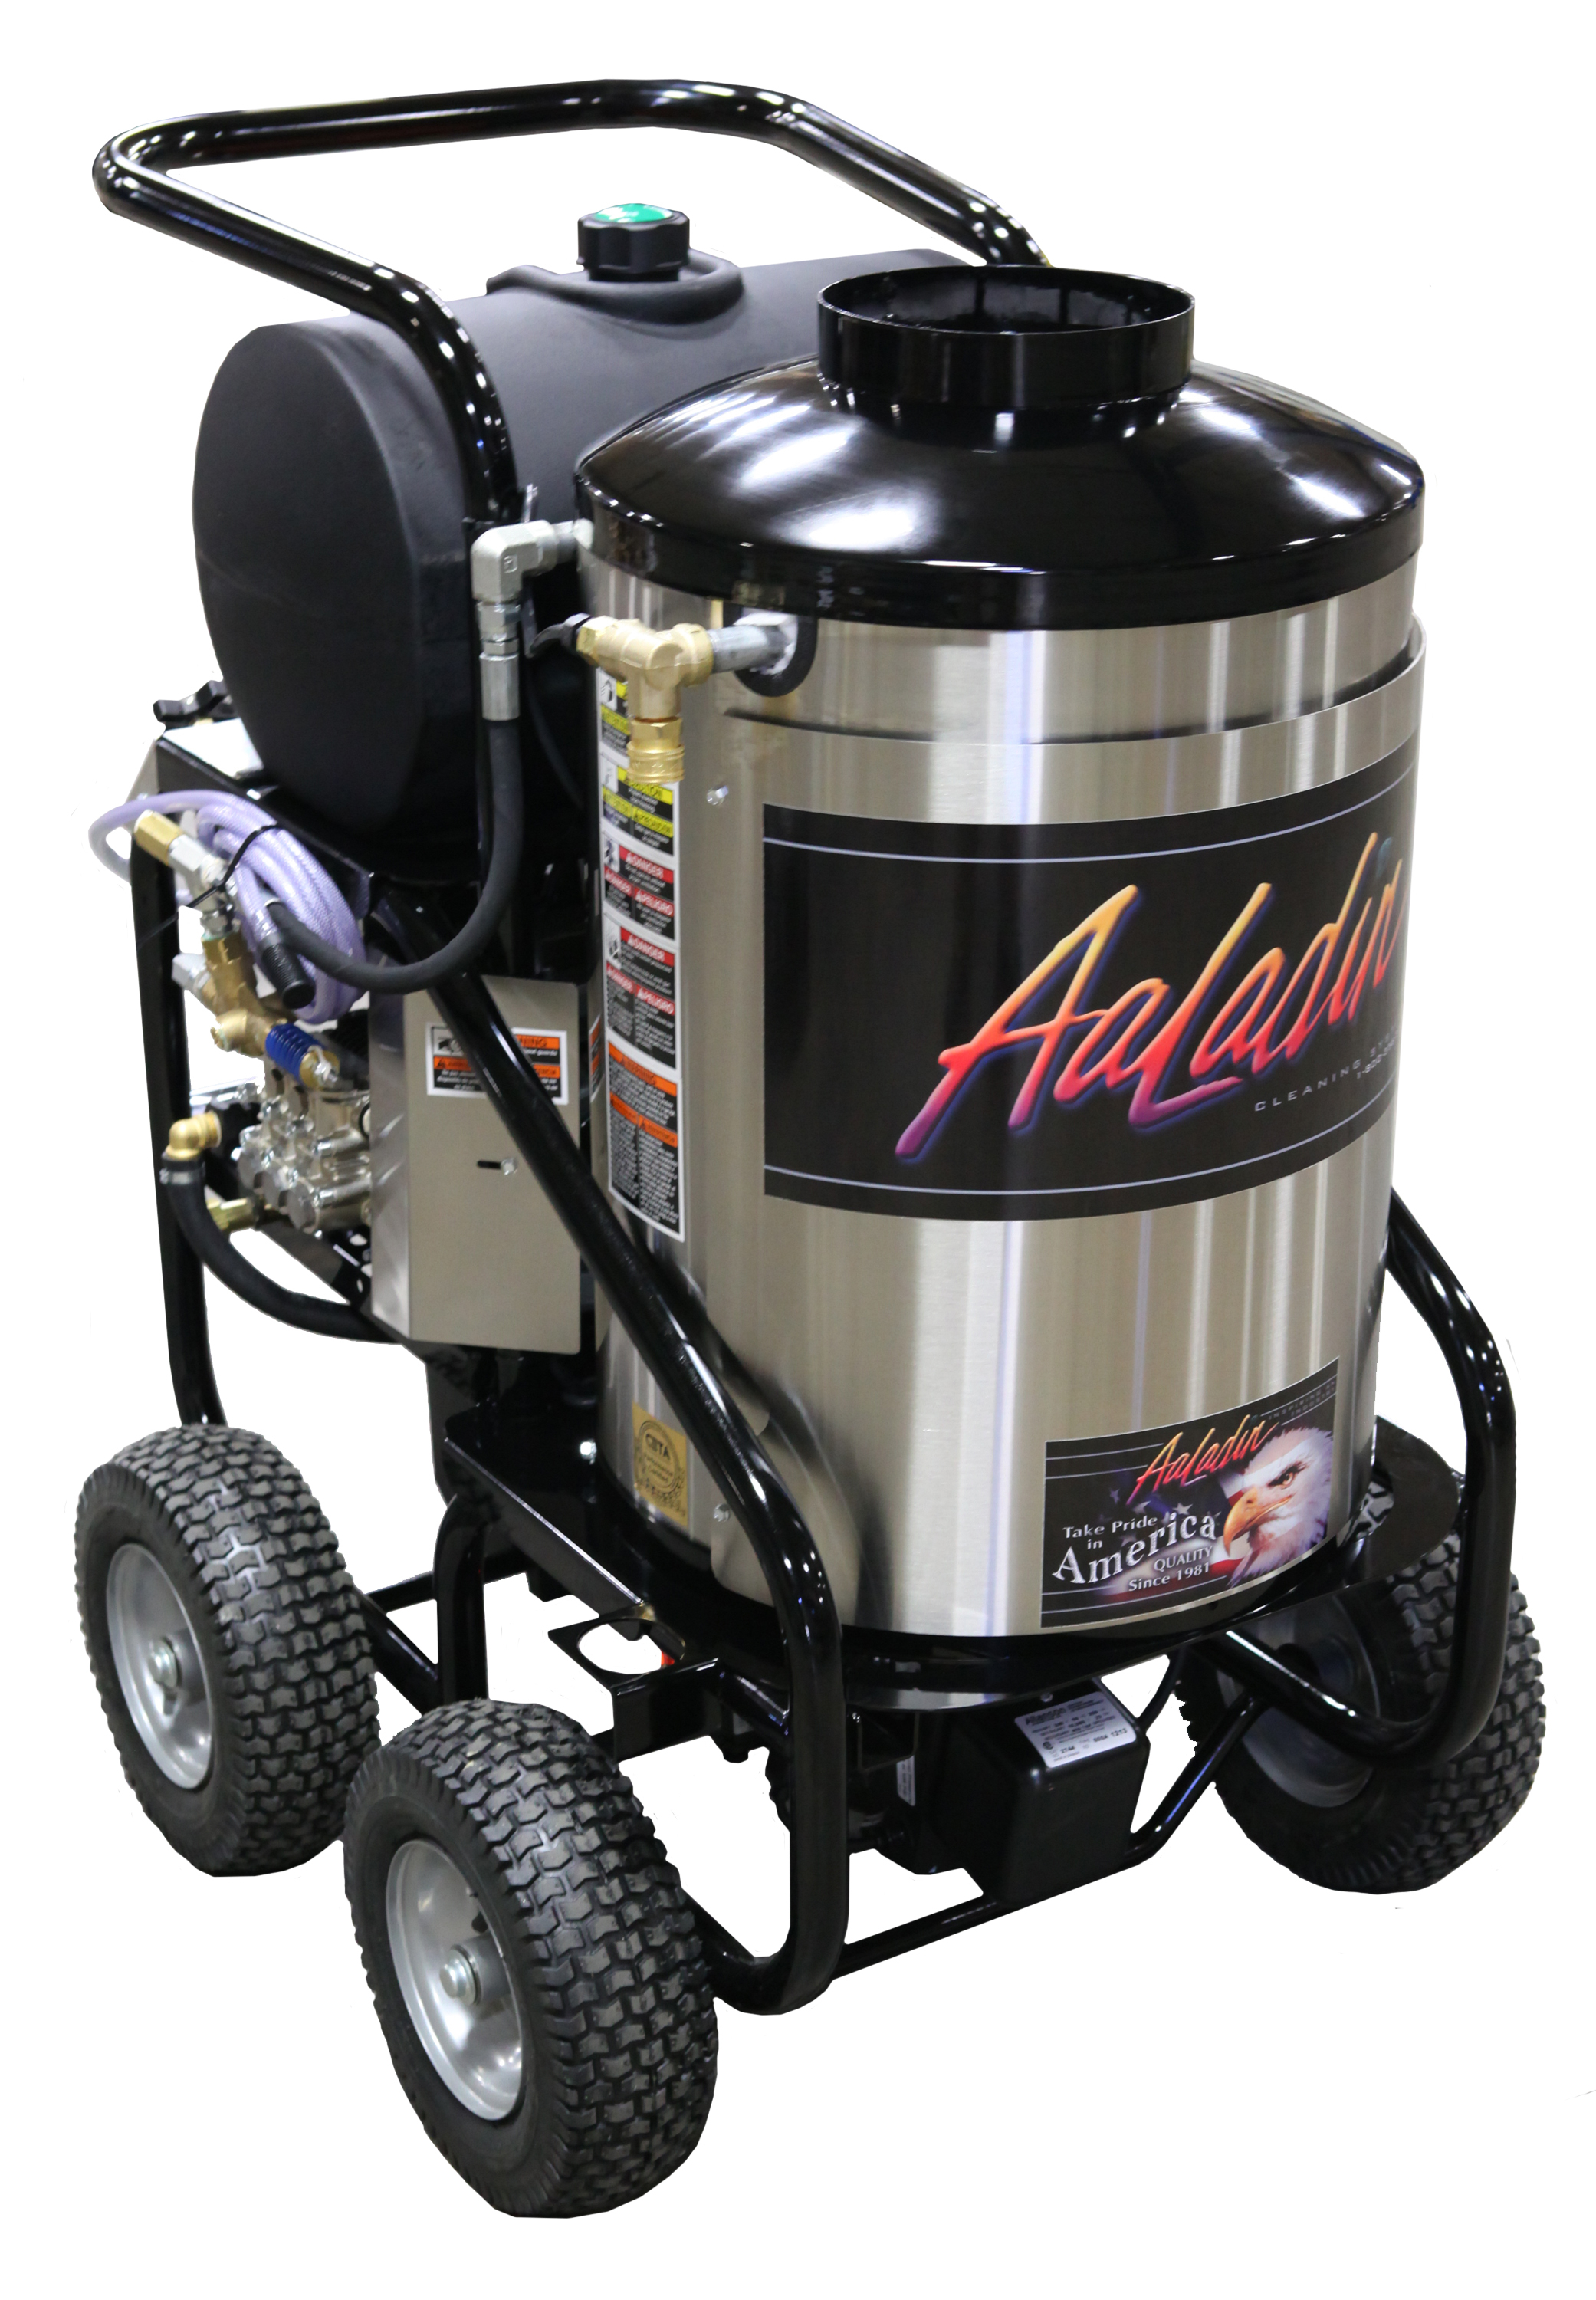 Aaladin Central Total Pressure Washer Supply image 5